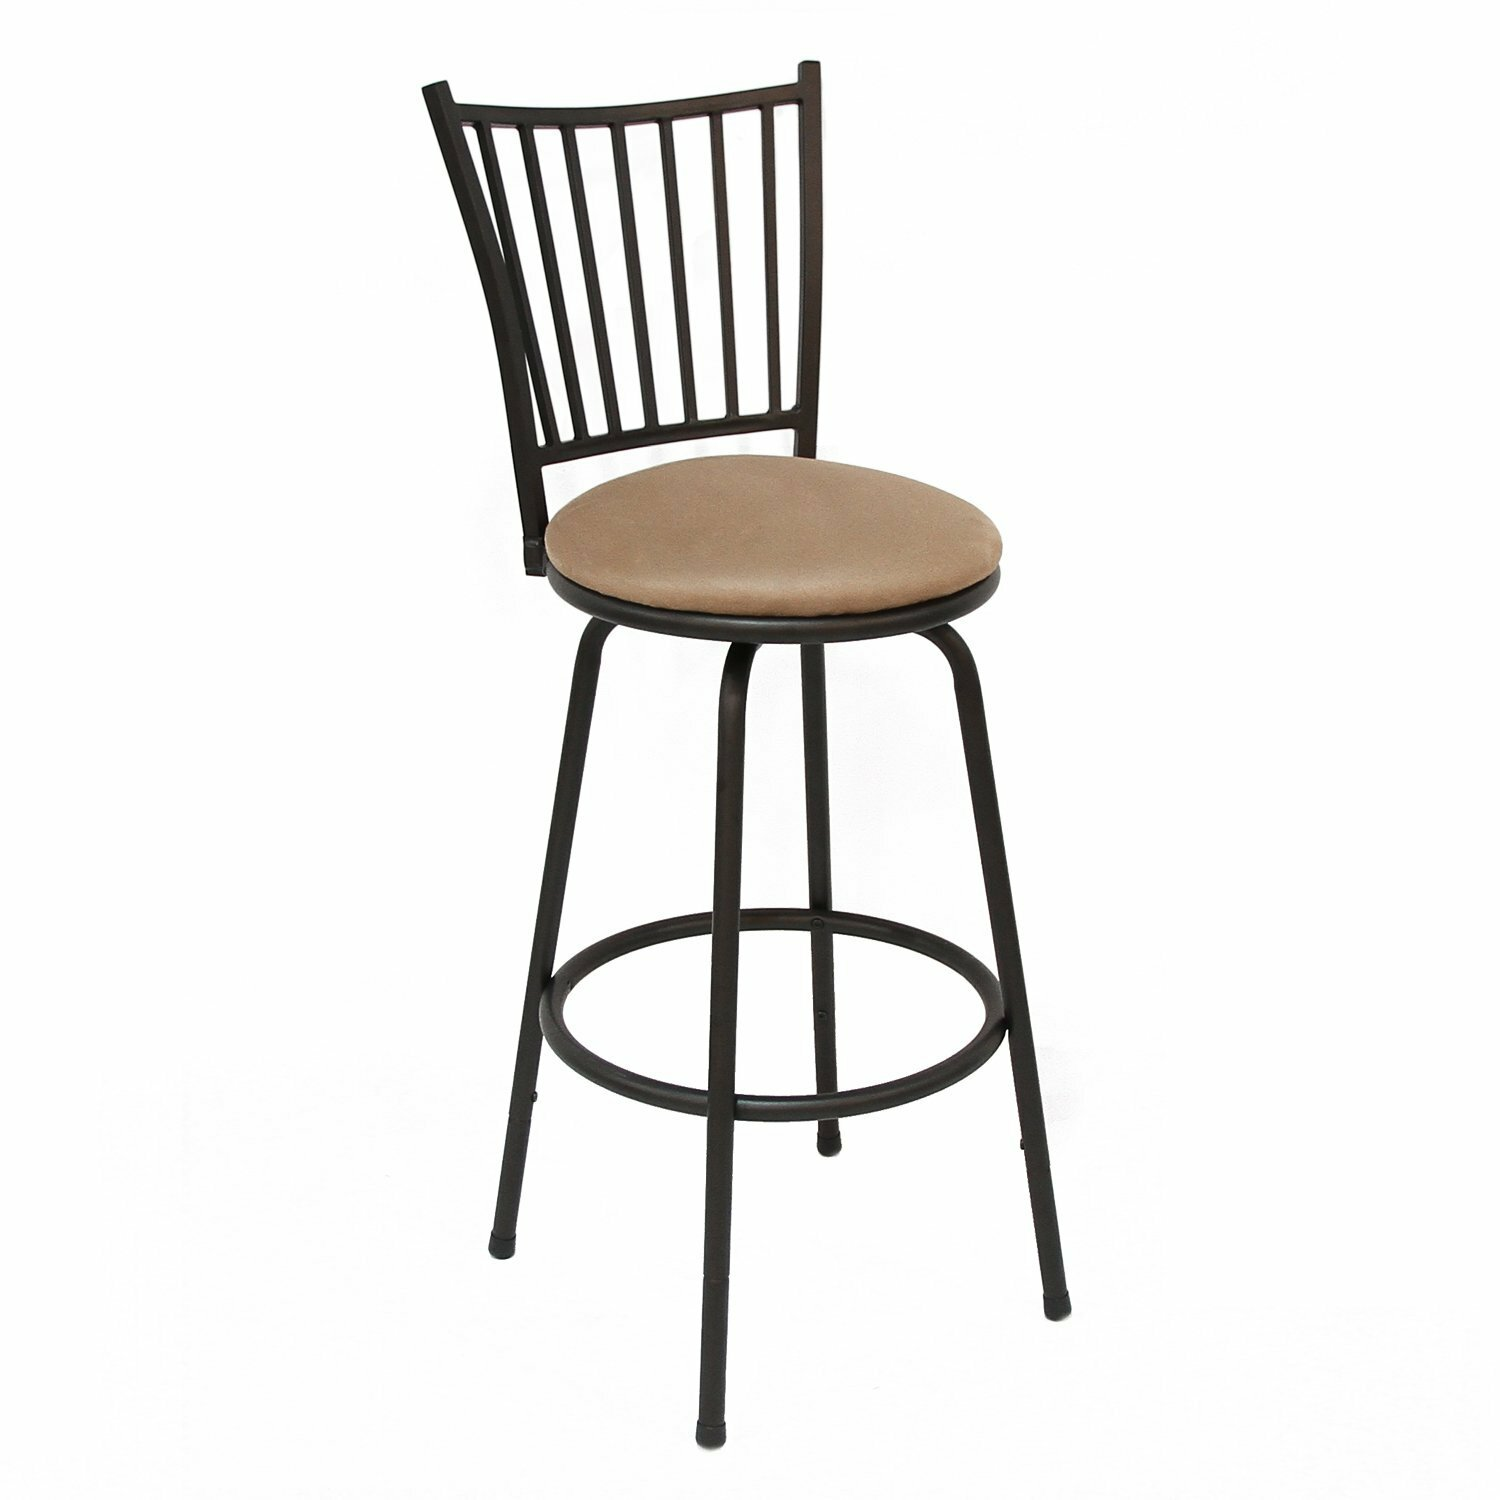 adecotrading 29 bar stool with cushion reviews wayfair